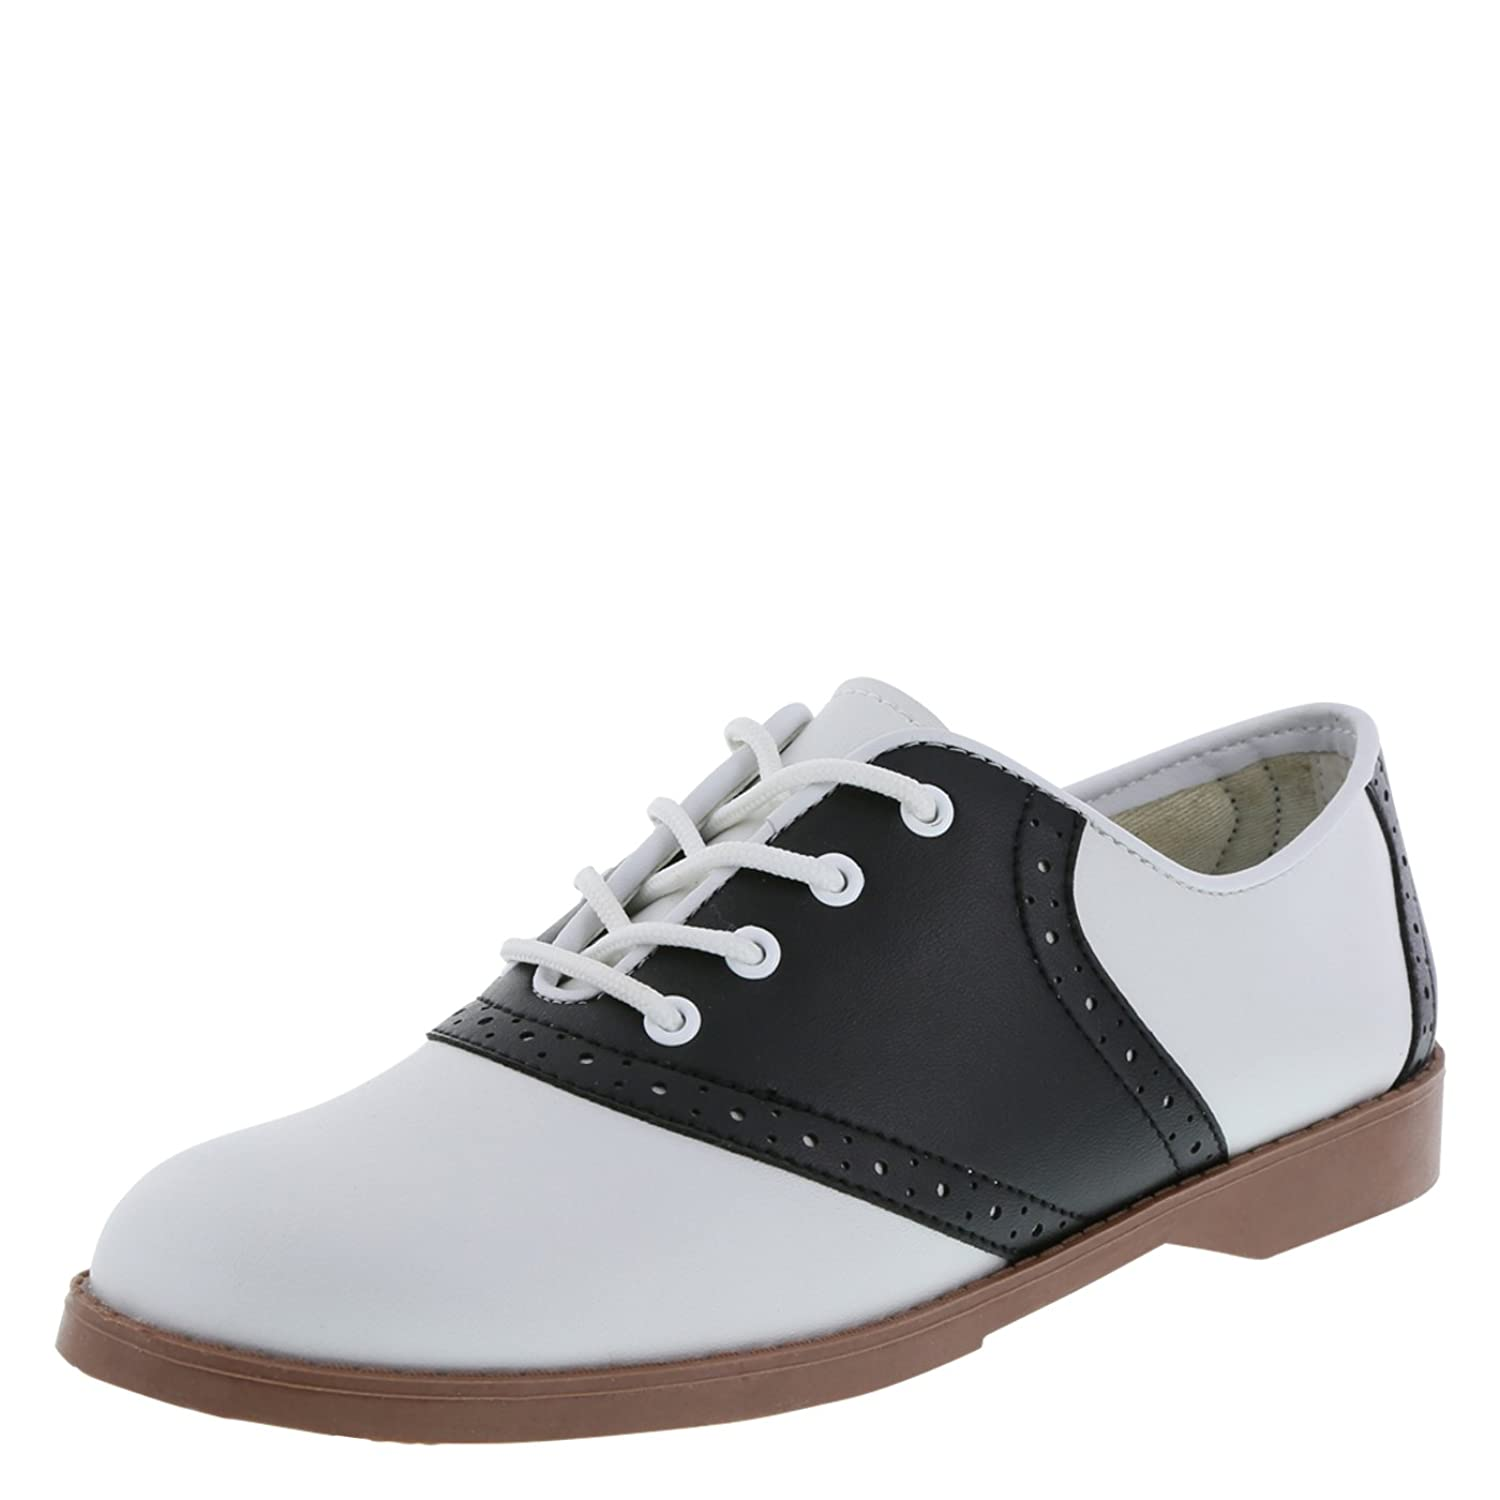 Saddle Shoes: Women's Vintage Black & White Shoes Predictions Womens Saddle Oxford.99 AT vintagedancer.com